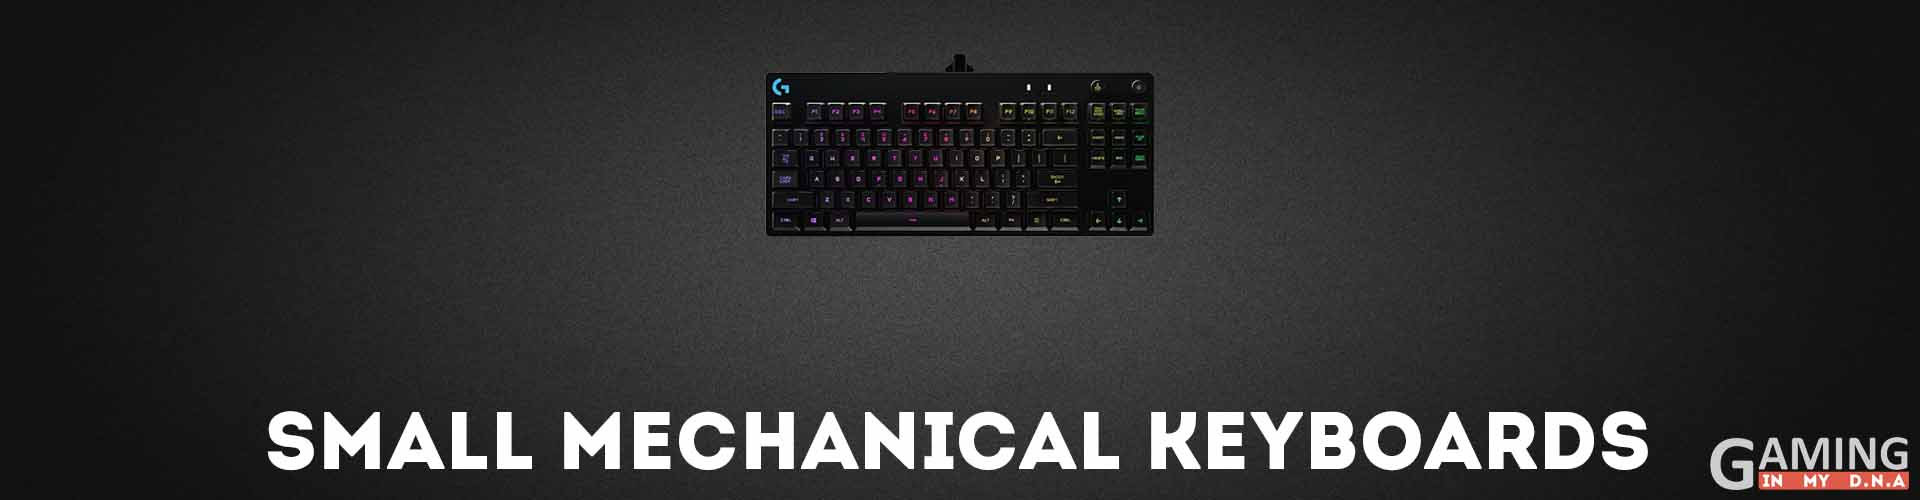 small mini mechanical keyboards for gaming